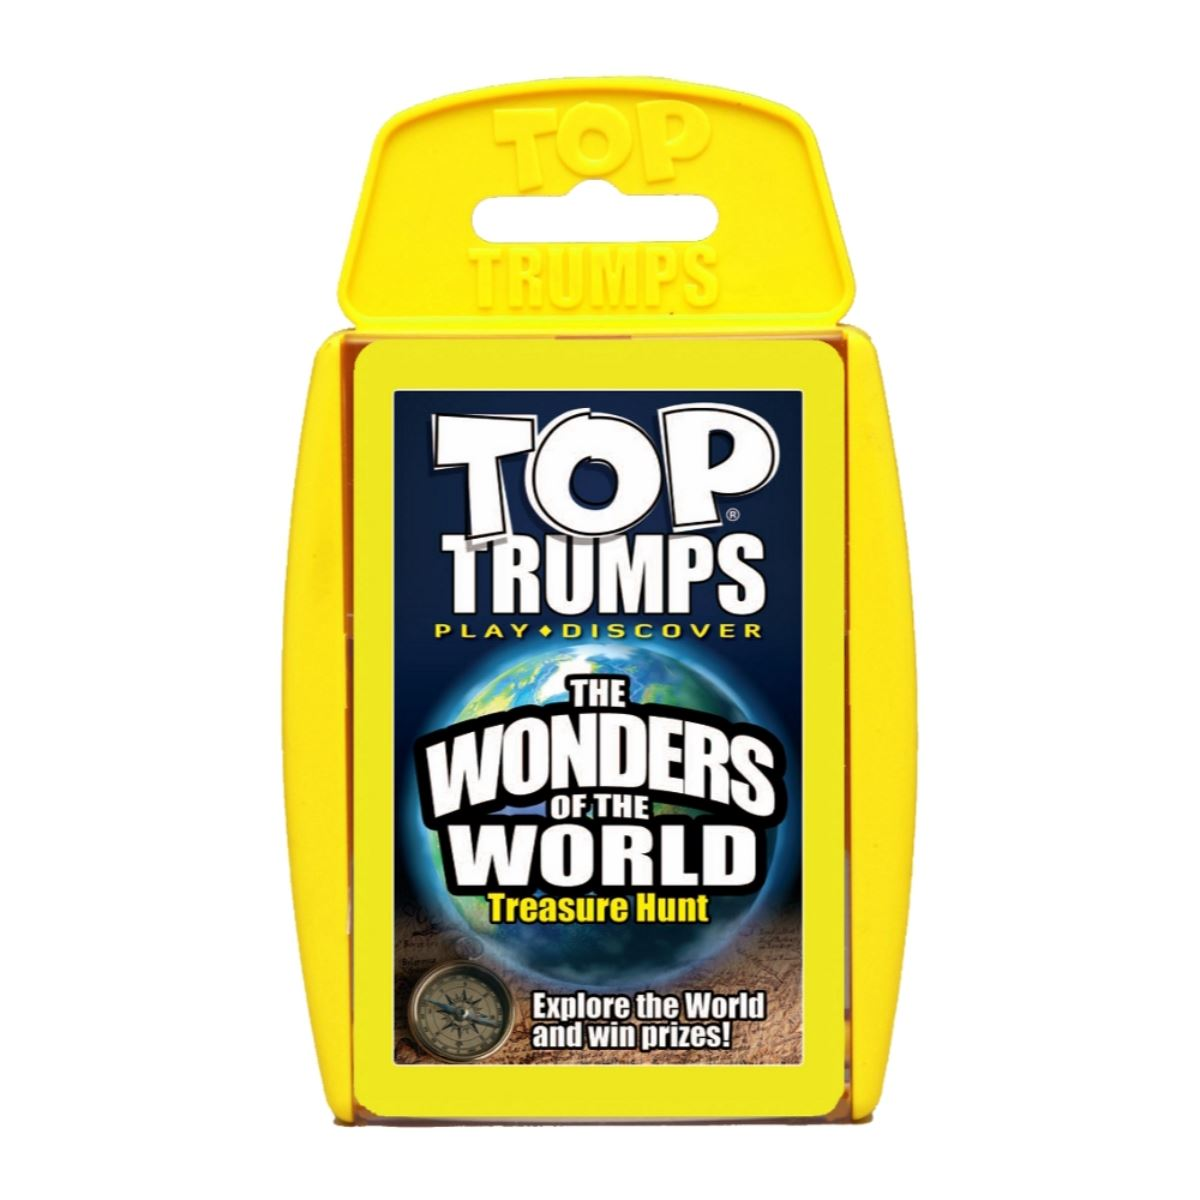 The Wonders Of The World - Top Trumps Game, boxed